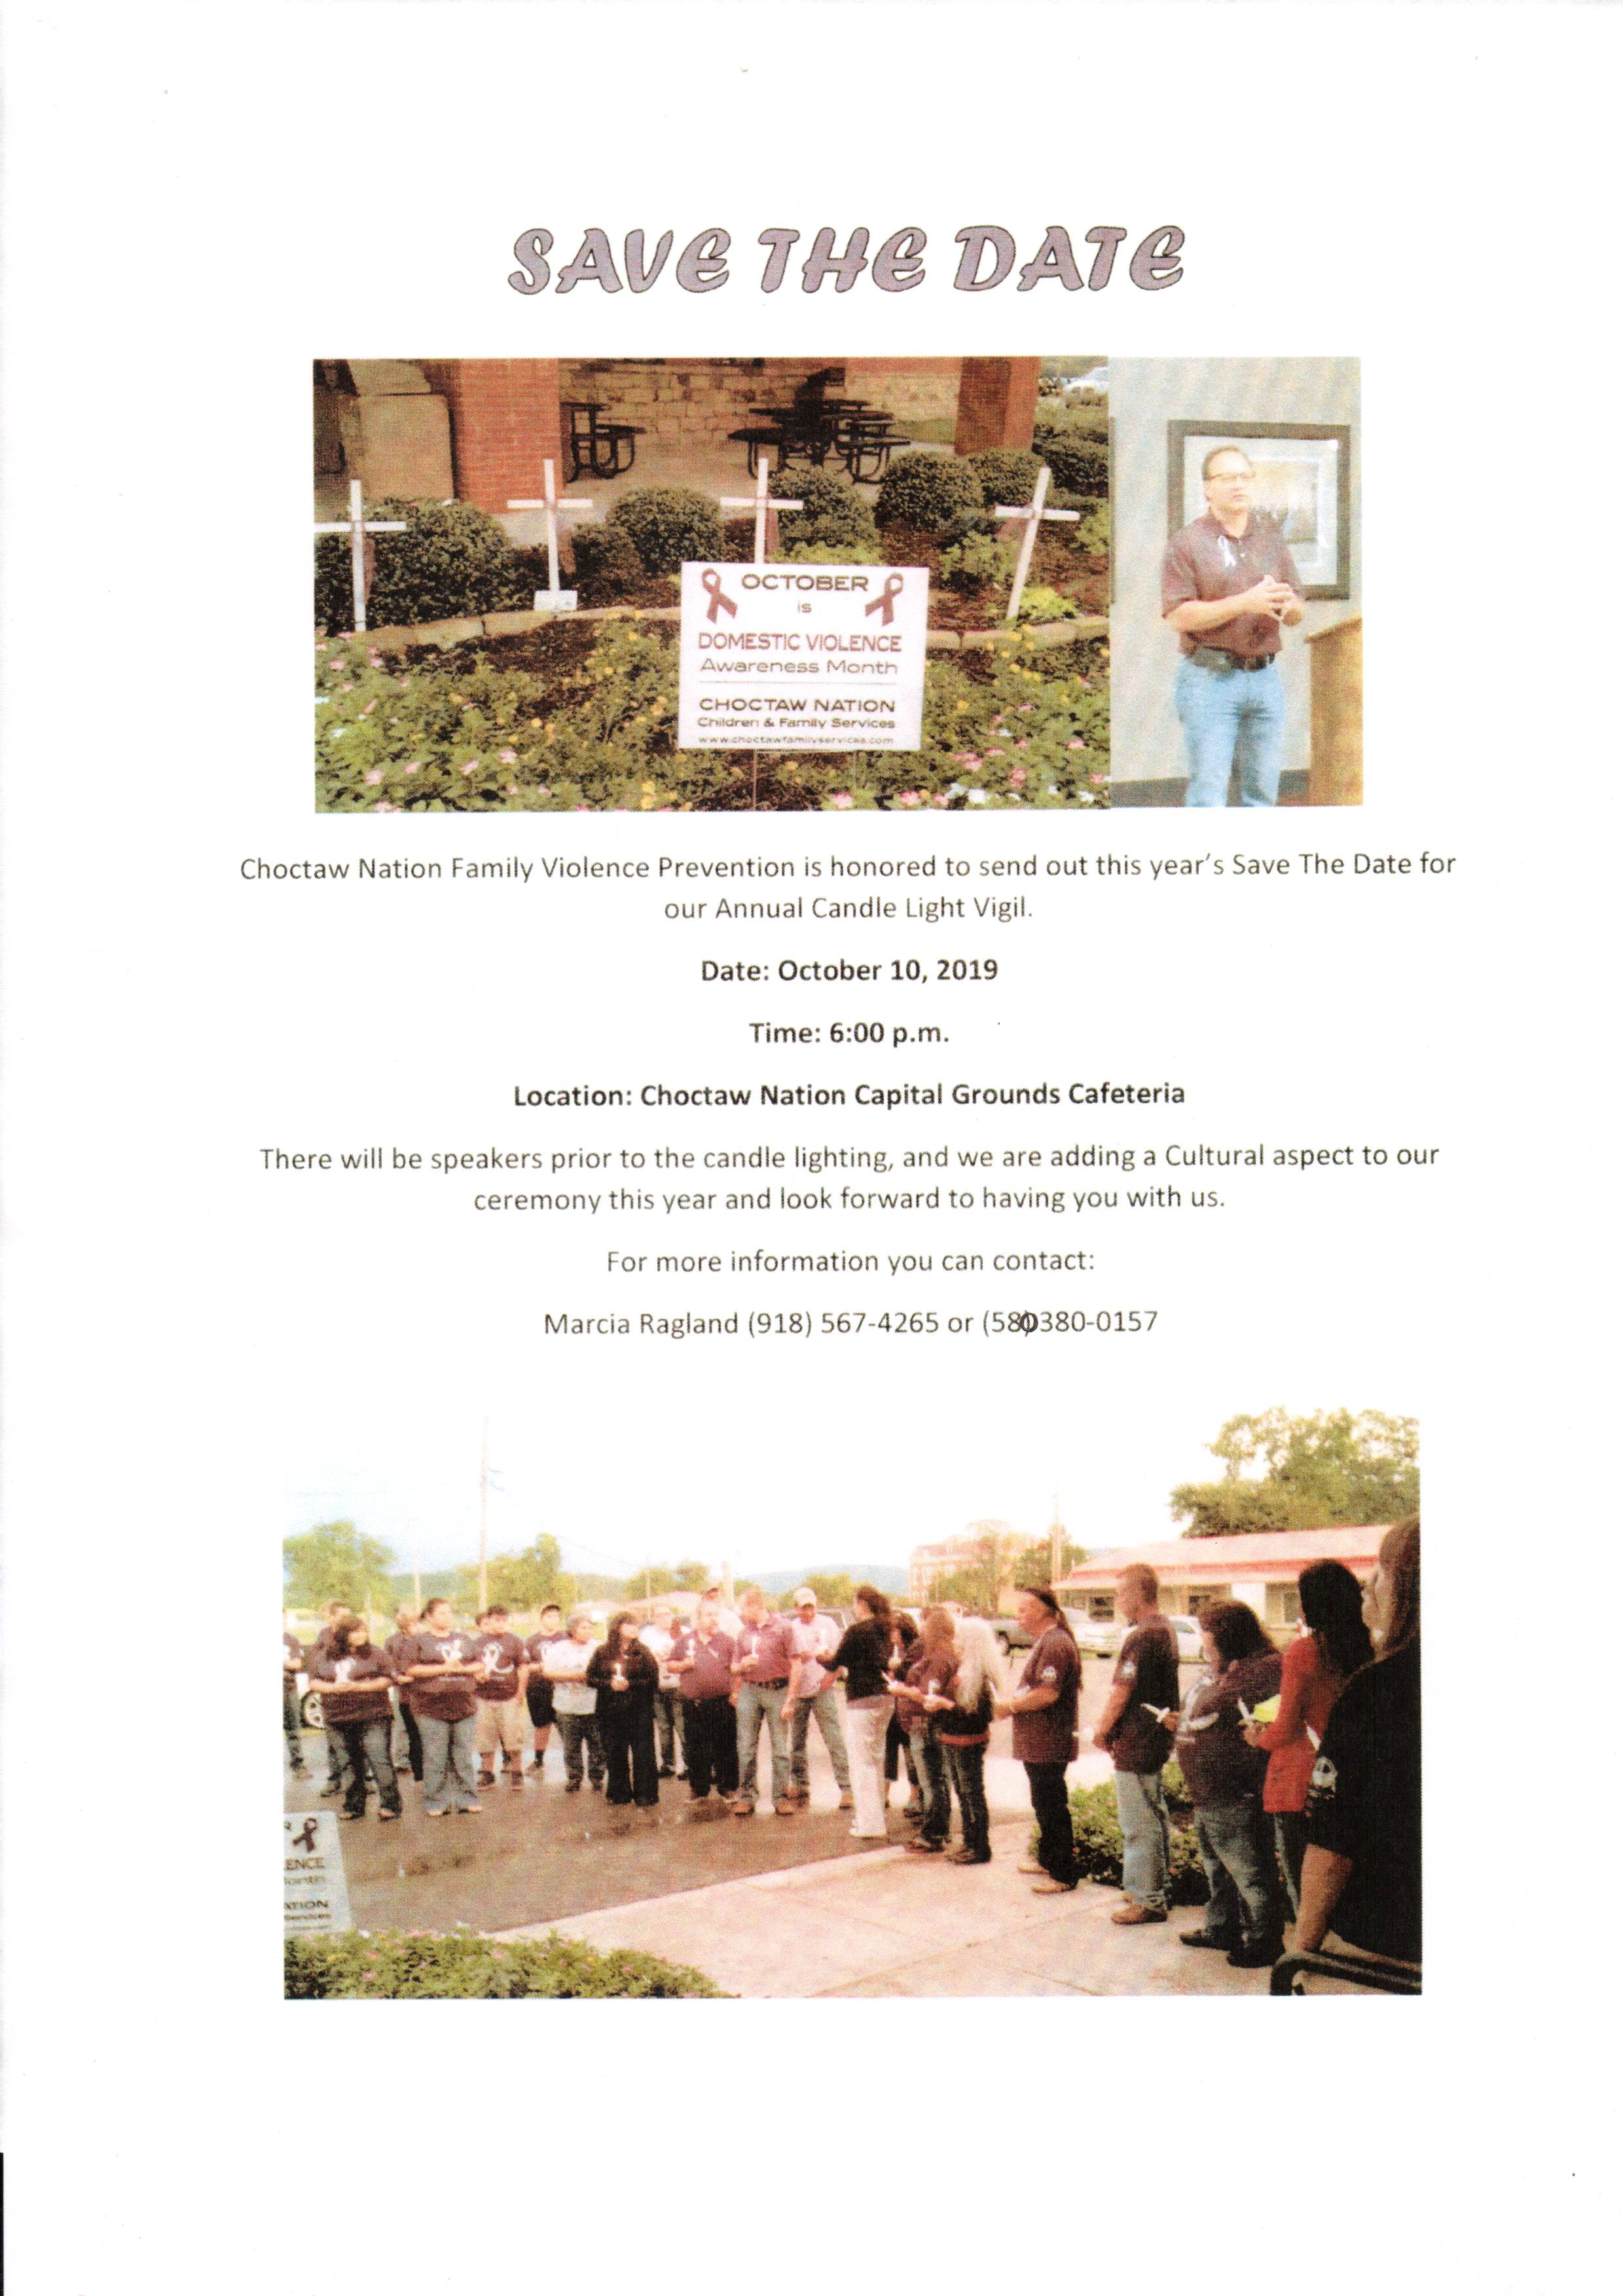 Choctaw Nation Family Violence Prevention Candle Light Vigil